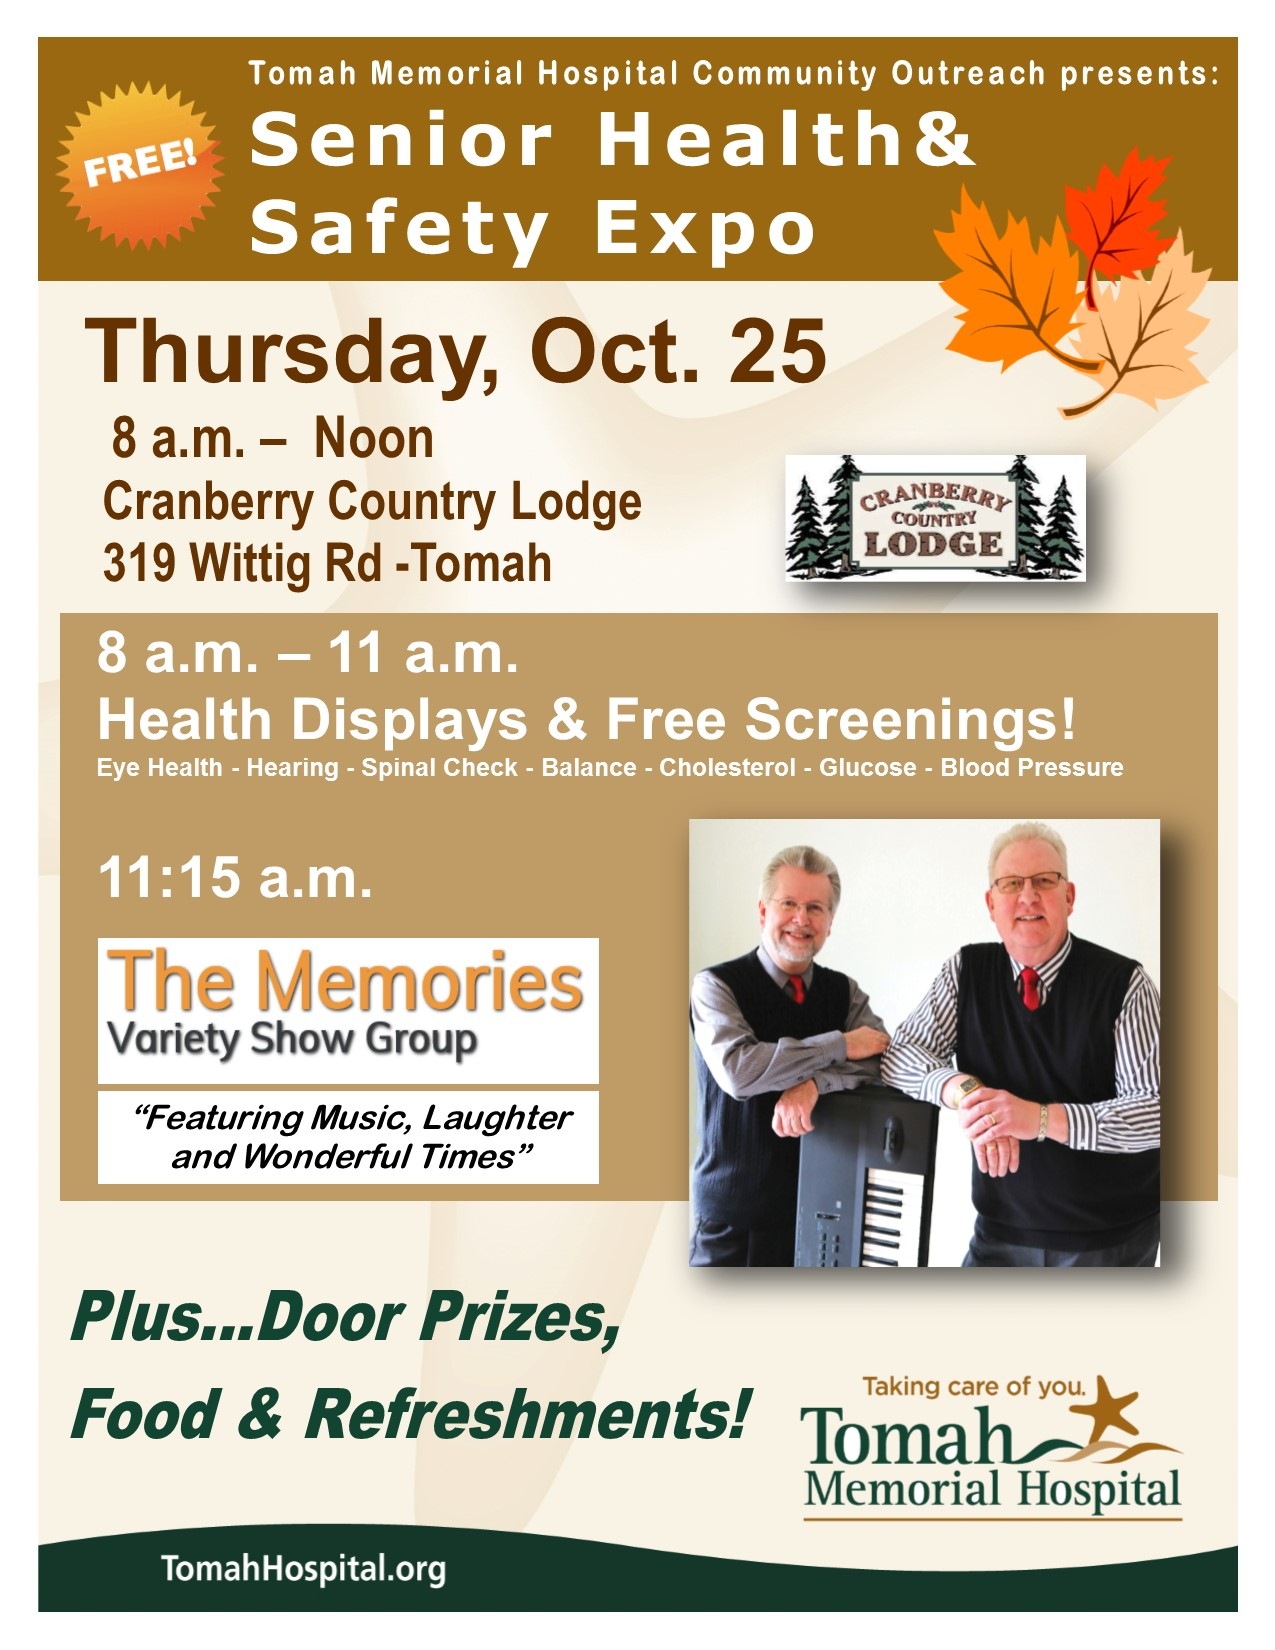 Senior Health Safety Expo 2018 color flier